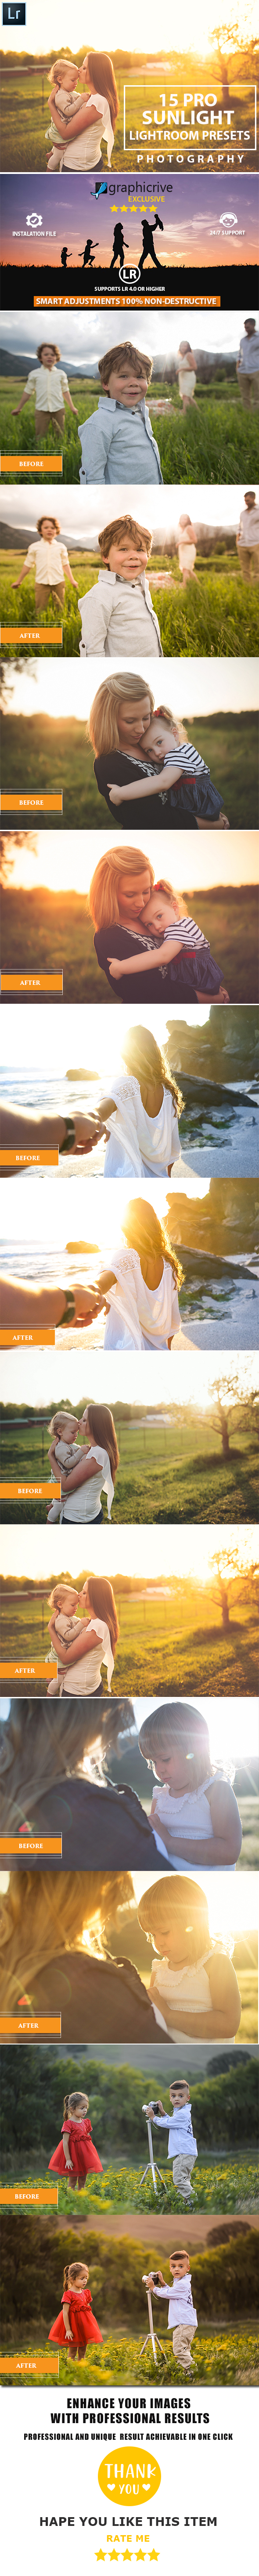 15 Pro Sunlight Lightroom Presets